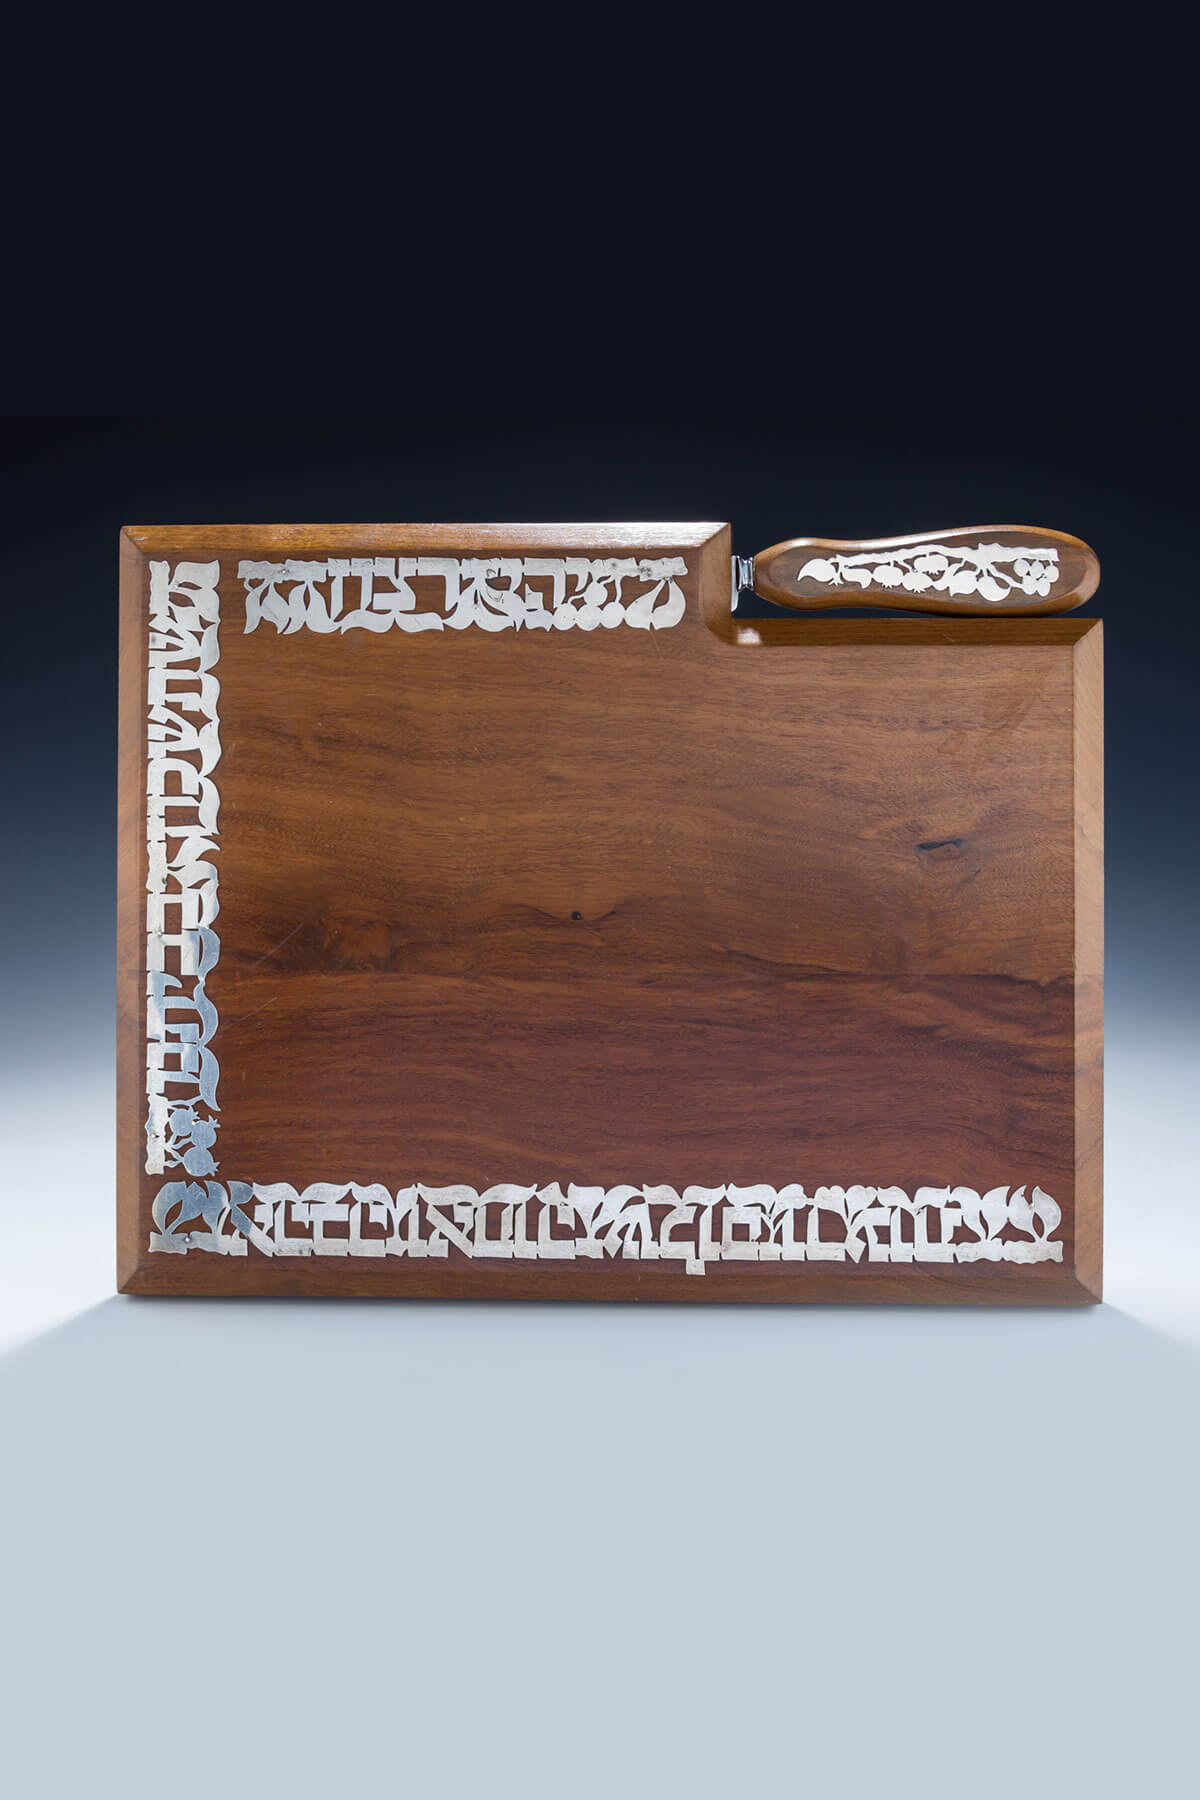 149. A Massive Mahogany And Sterling Silver Challah Board And Knife